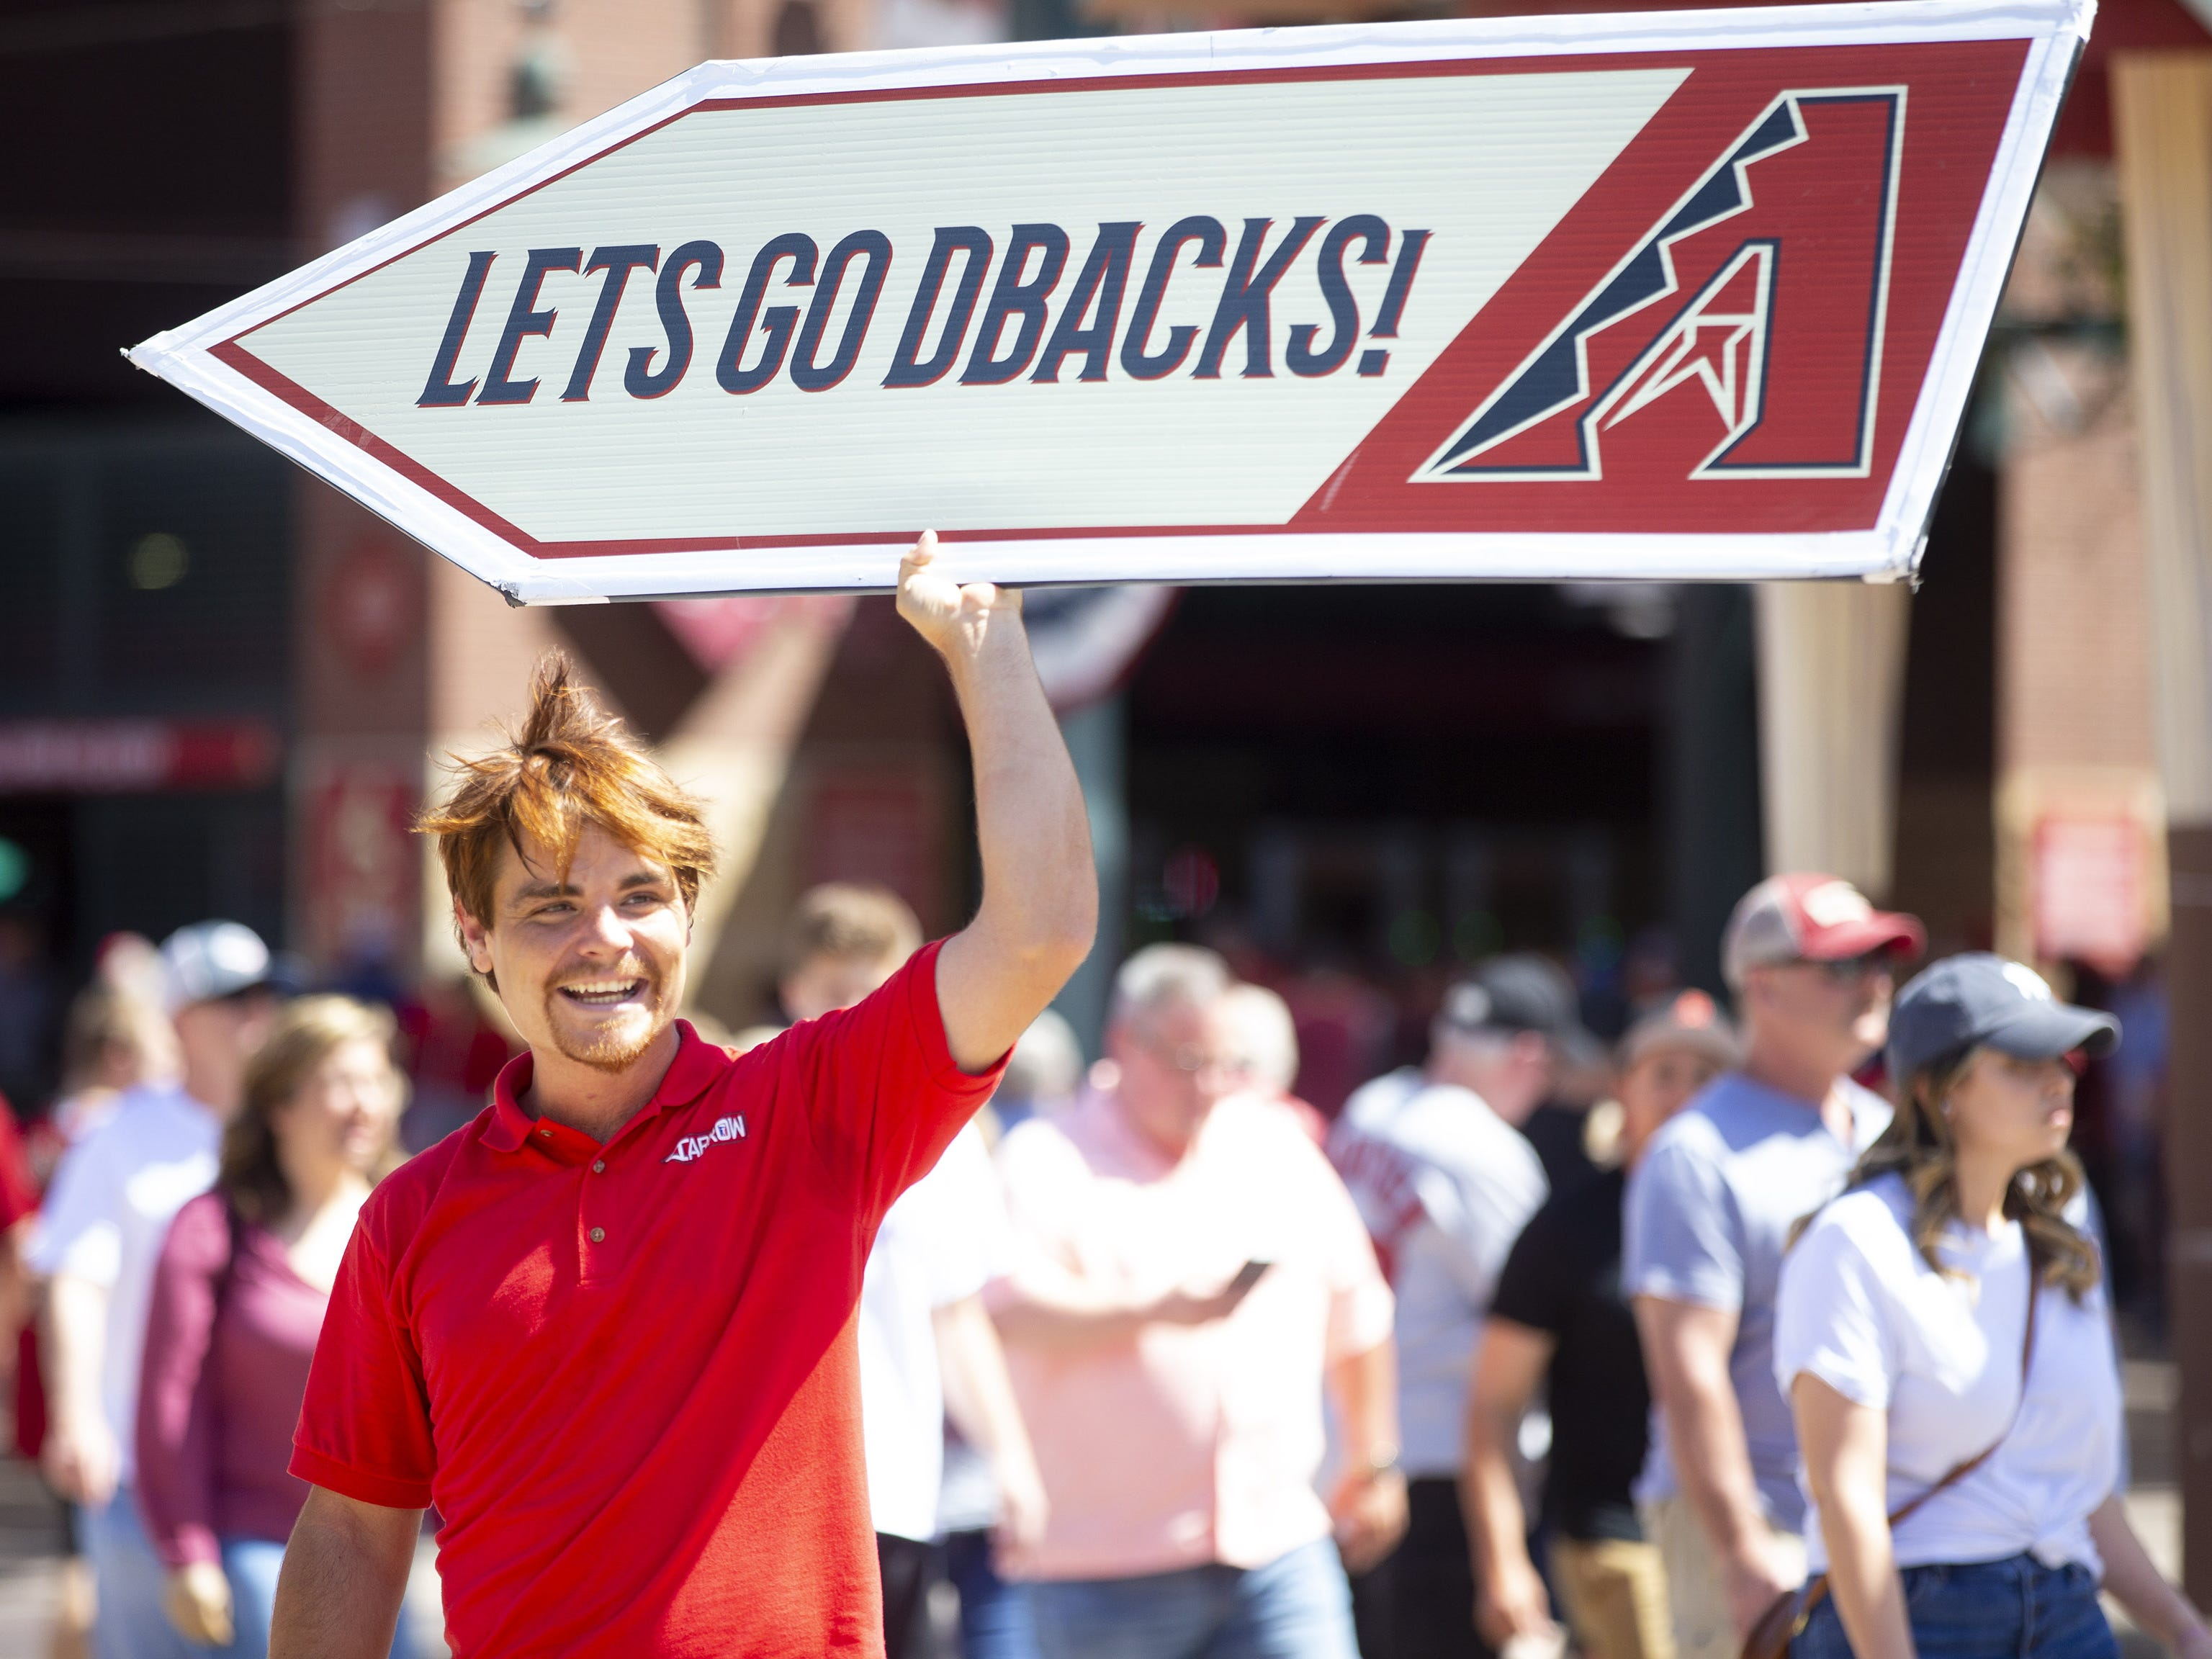 Will Austin, of Tempe, celebrates Opening Day during a street festival at Chase Field in Phoenix on April 5.